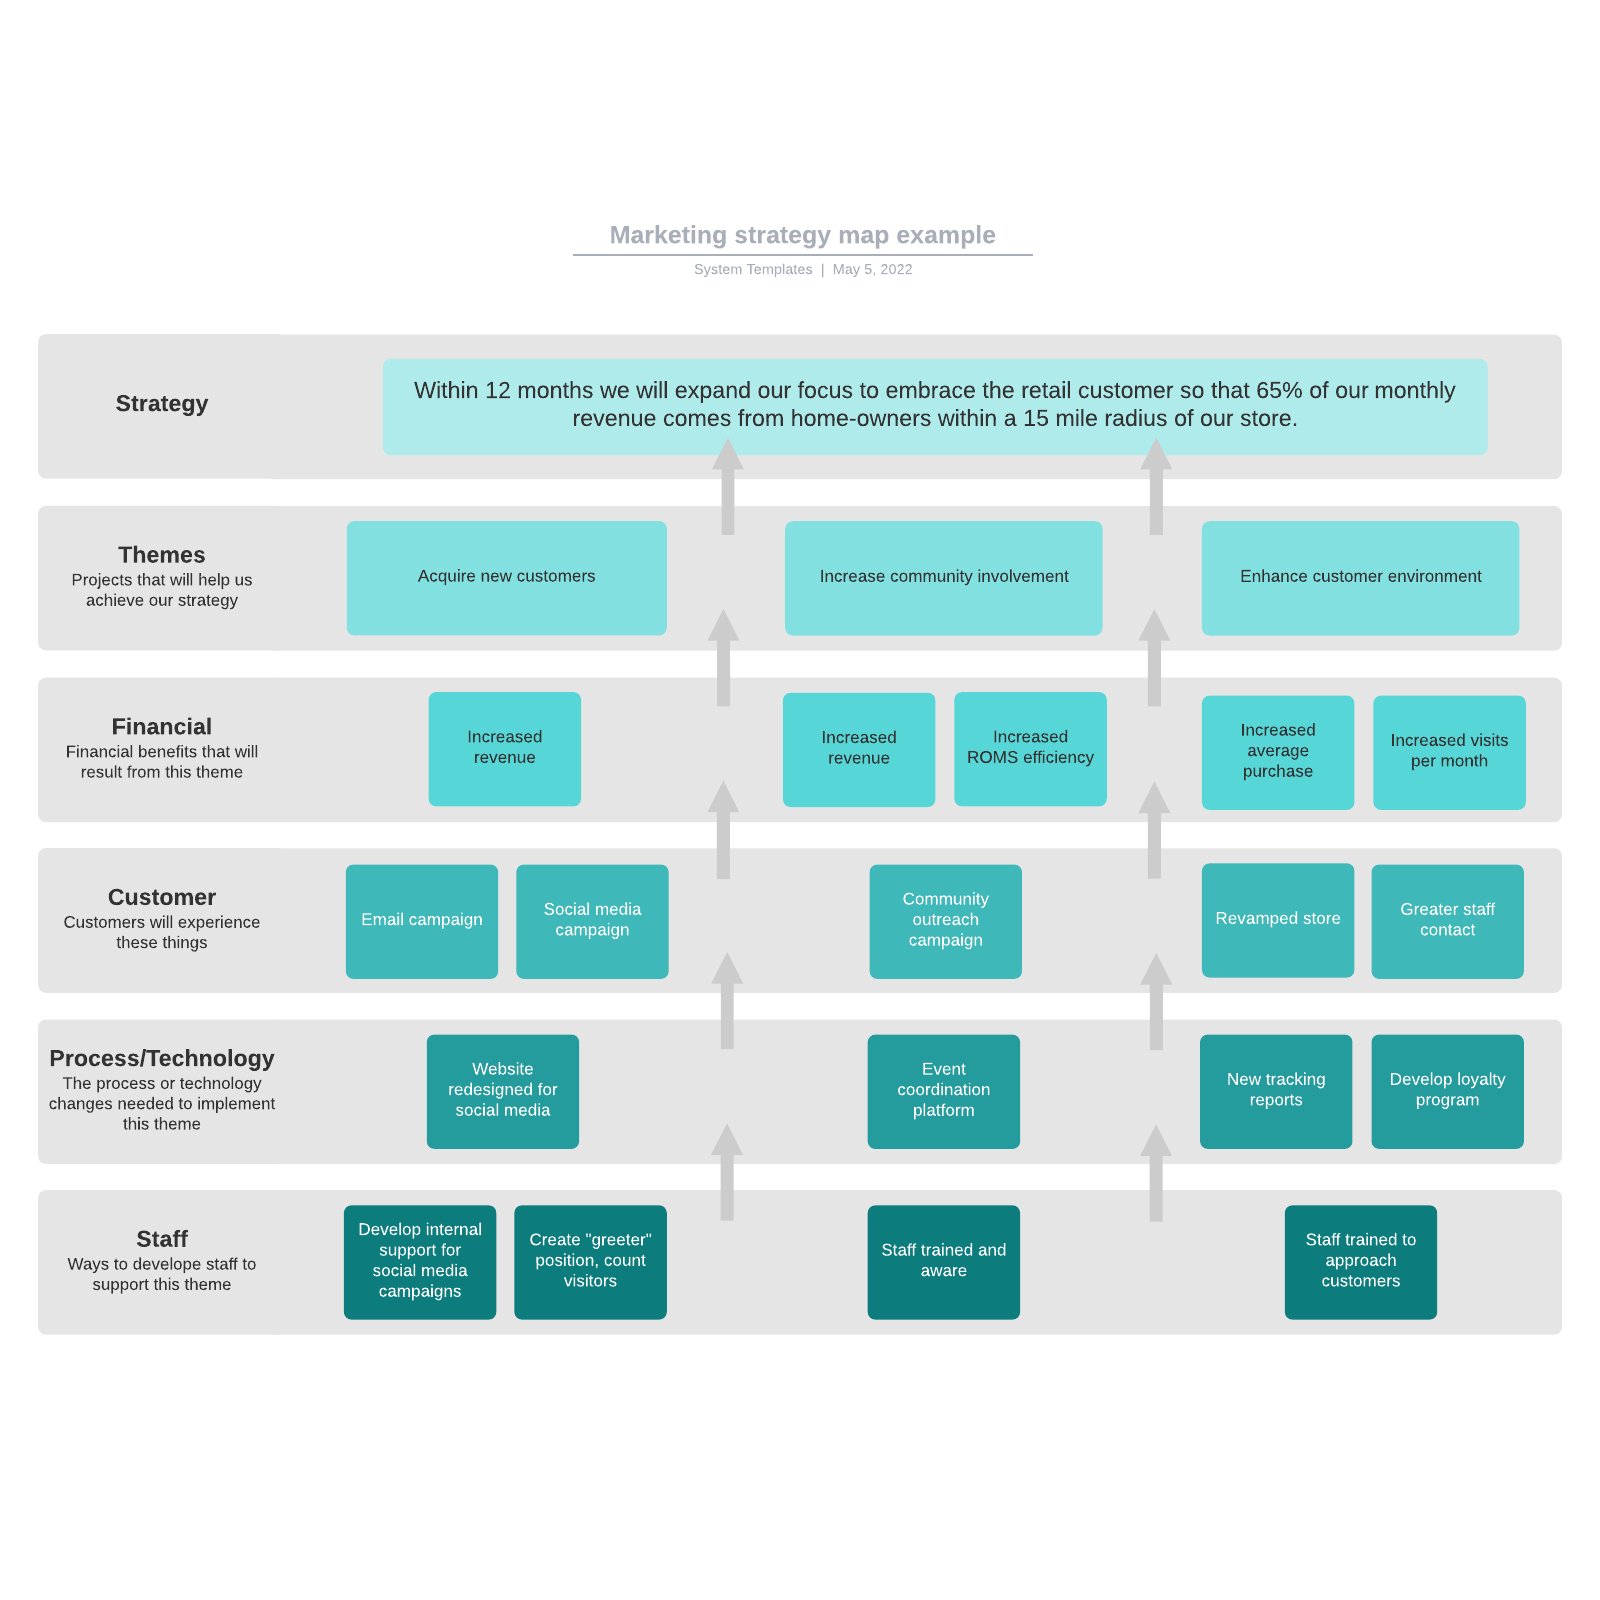 Marketing strategy map example